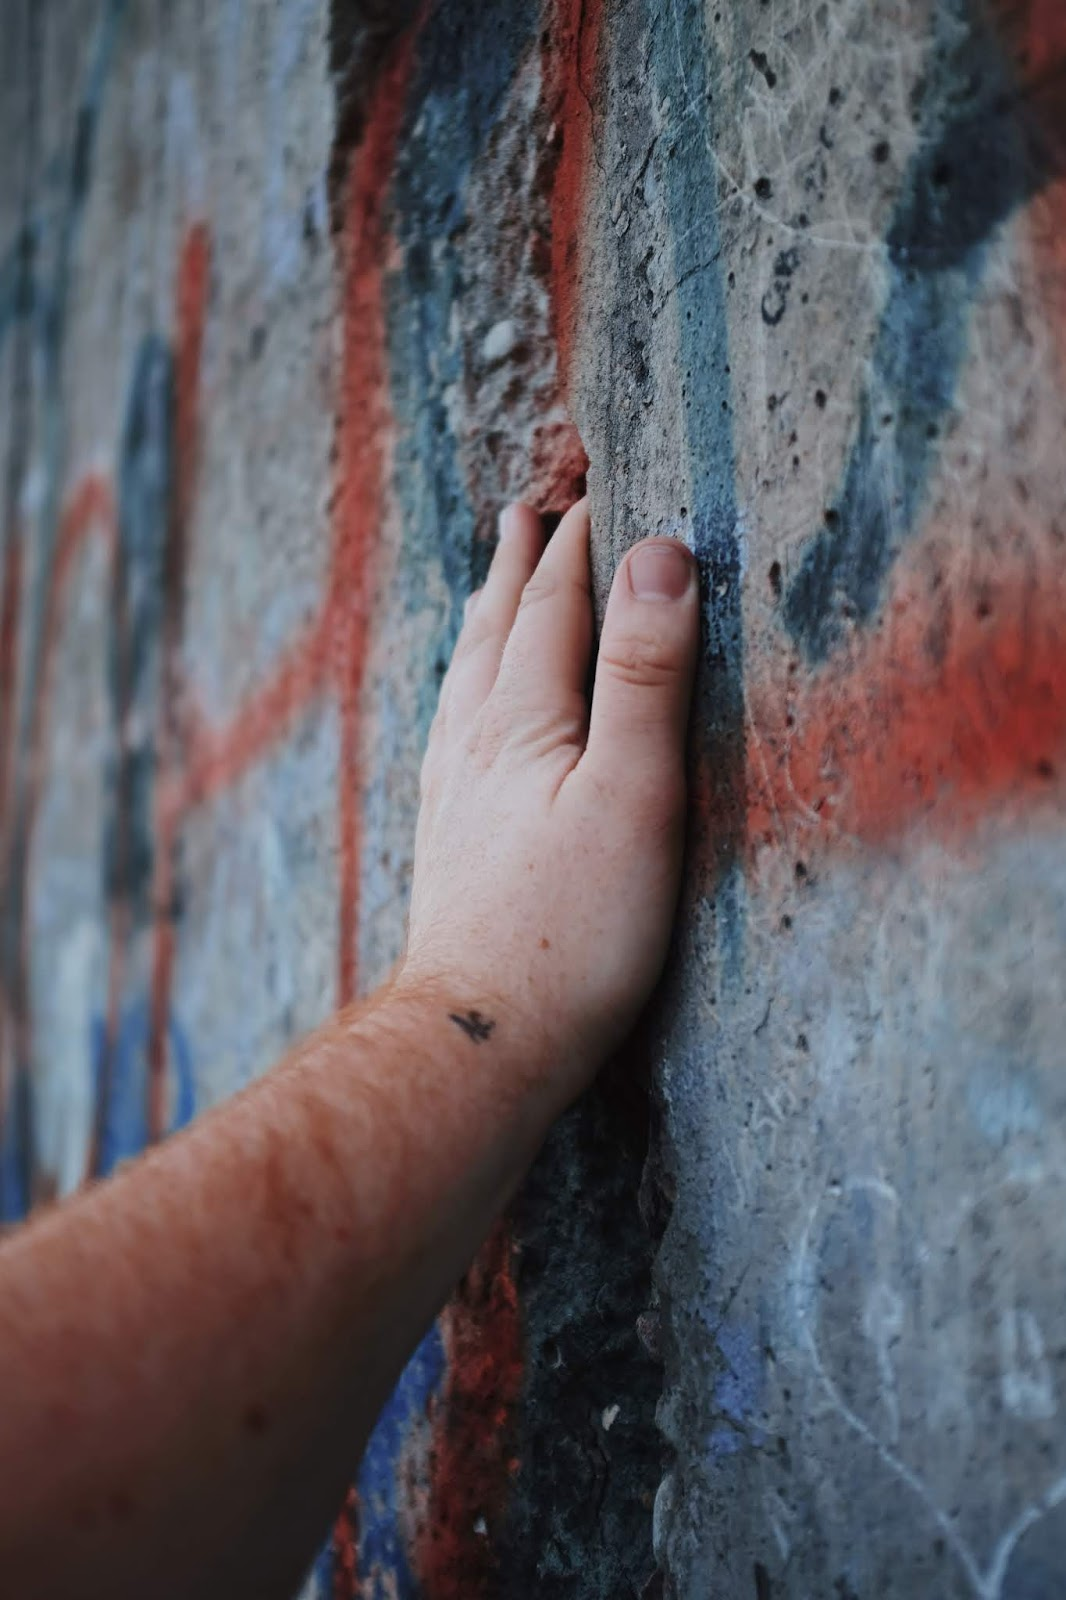 Touching the Berlin Wall